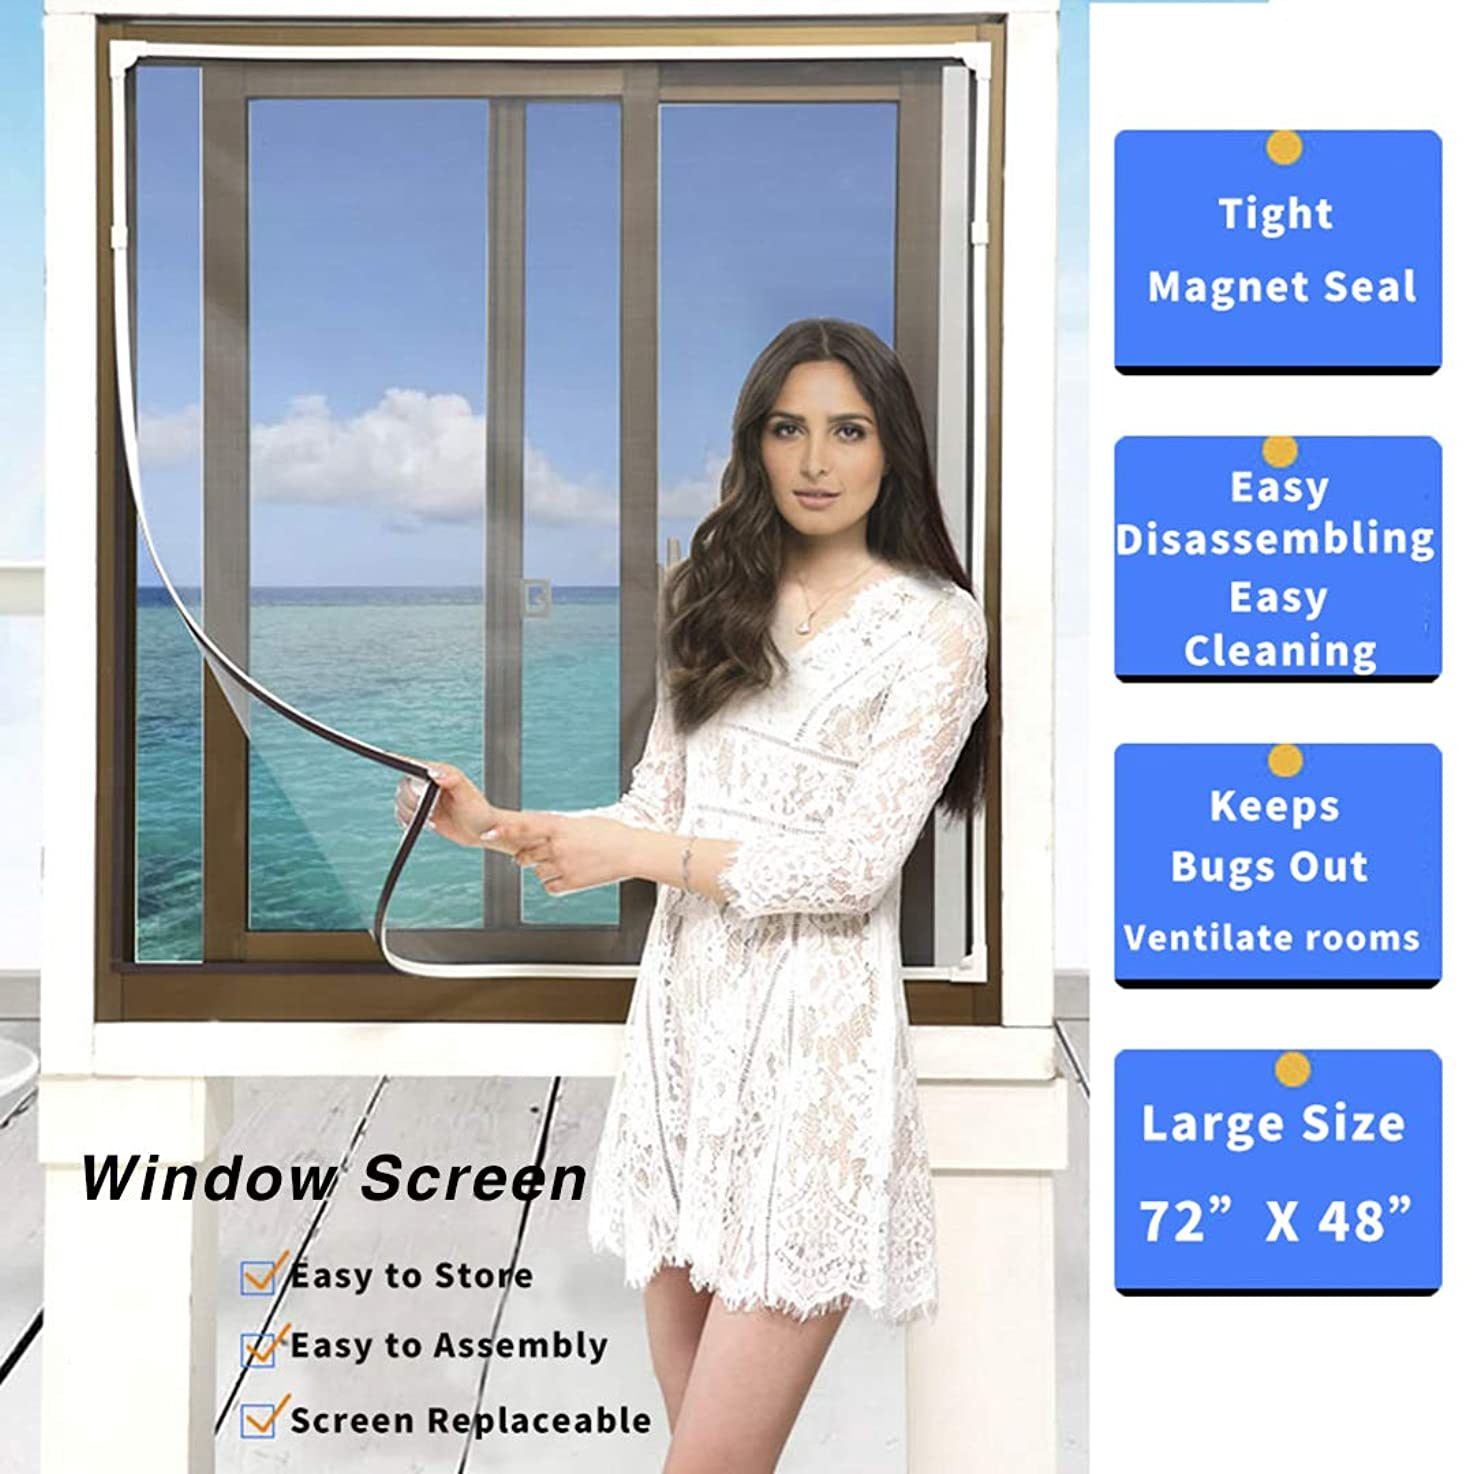 Magnetic Window Screen Size Up to 72